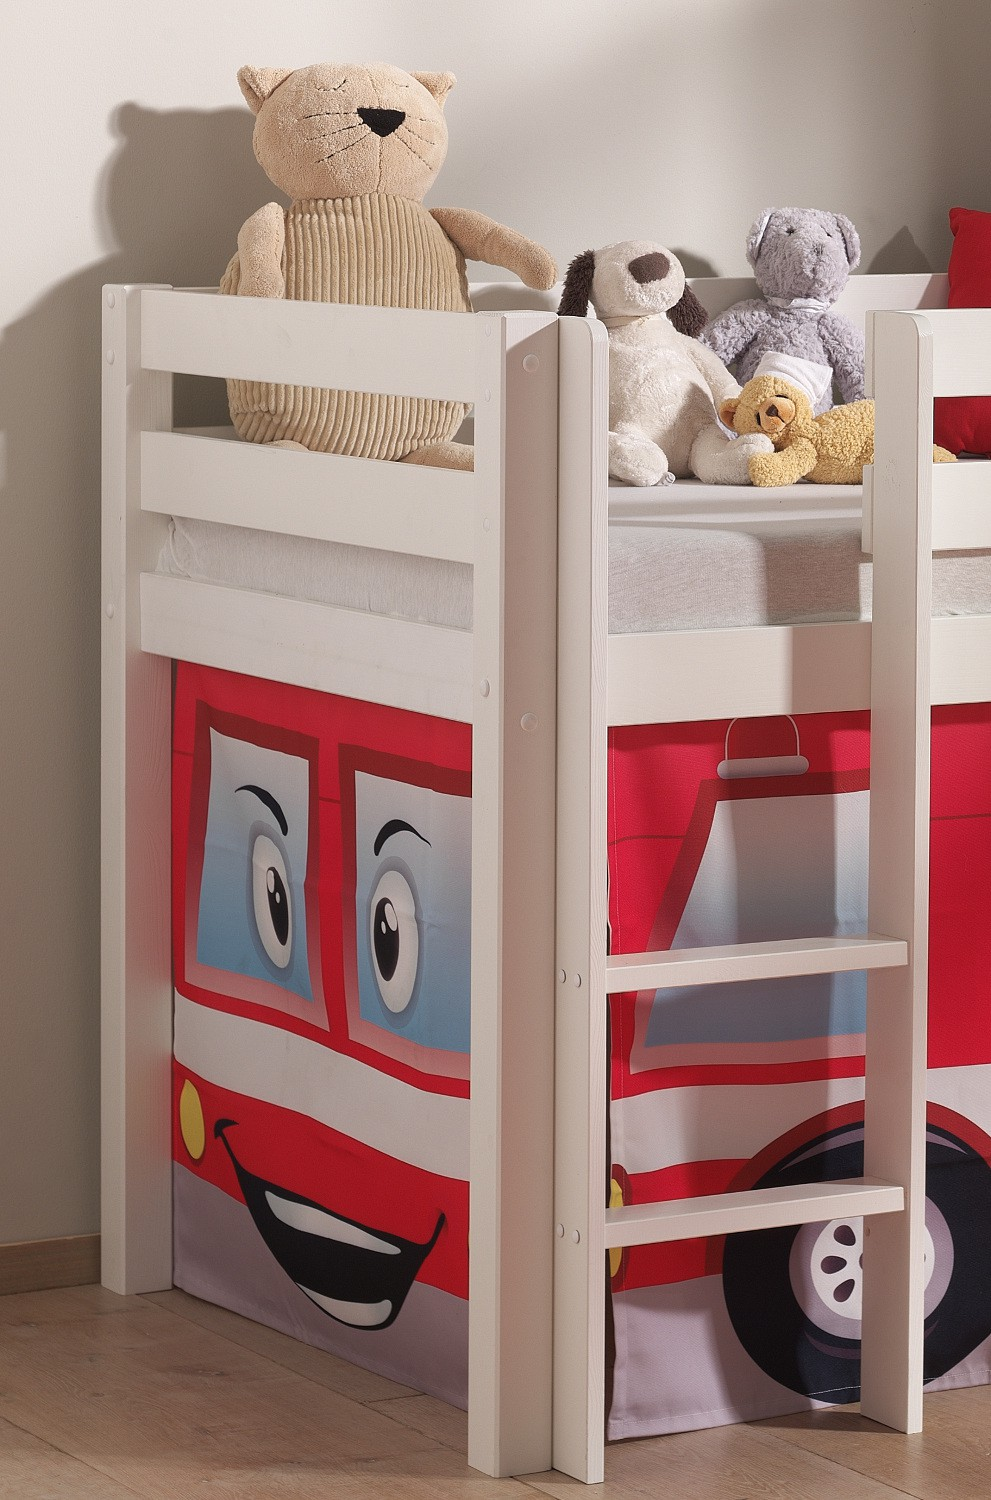 neu spielbett pino feuerwehr hochbett kinderbett rutsche. Black Bedroom Furniture Sets. Home Design Ideas